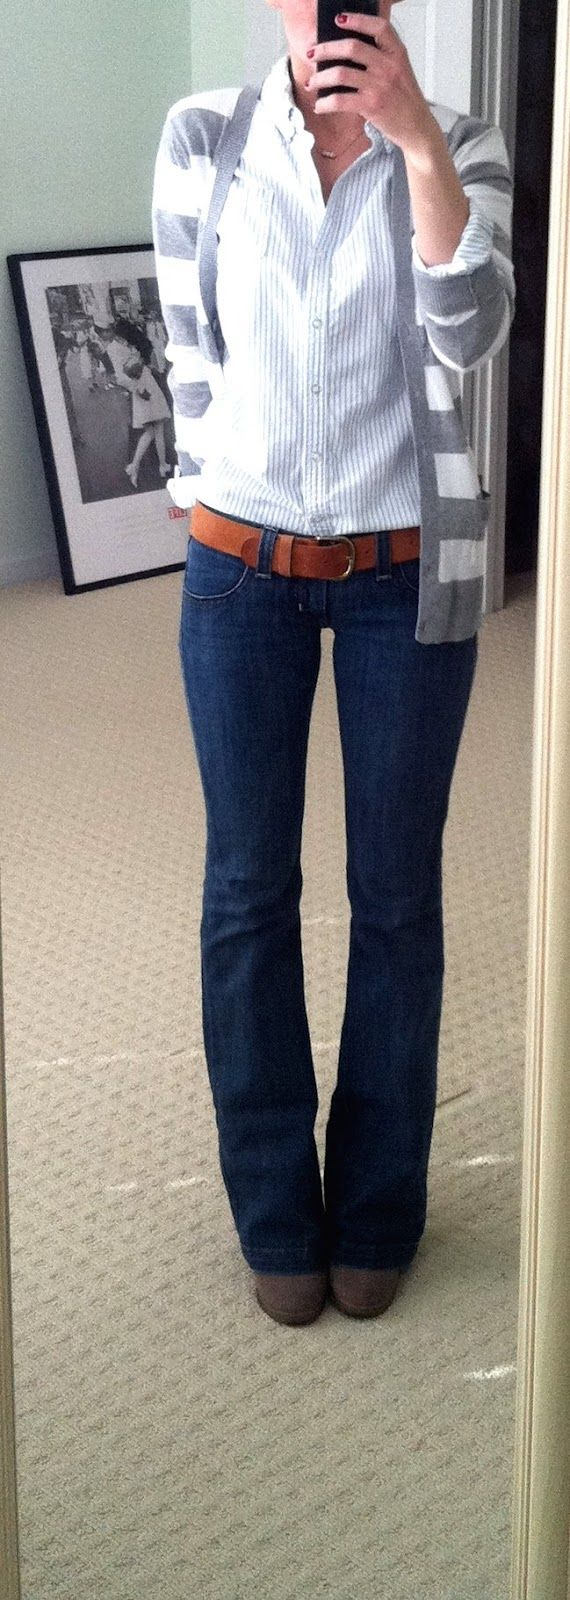 Does your workplace have a casual Friday/jeans acceptable policy? Here's an example of how to still be workplace appropriate --